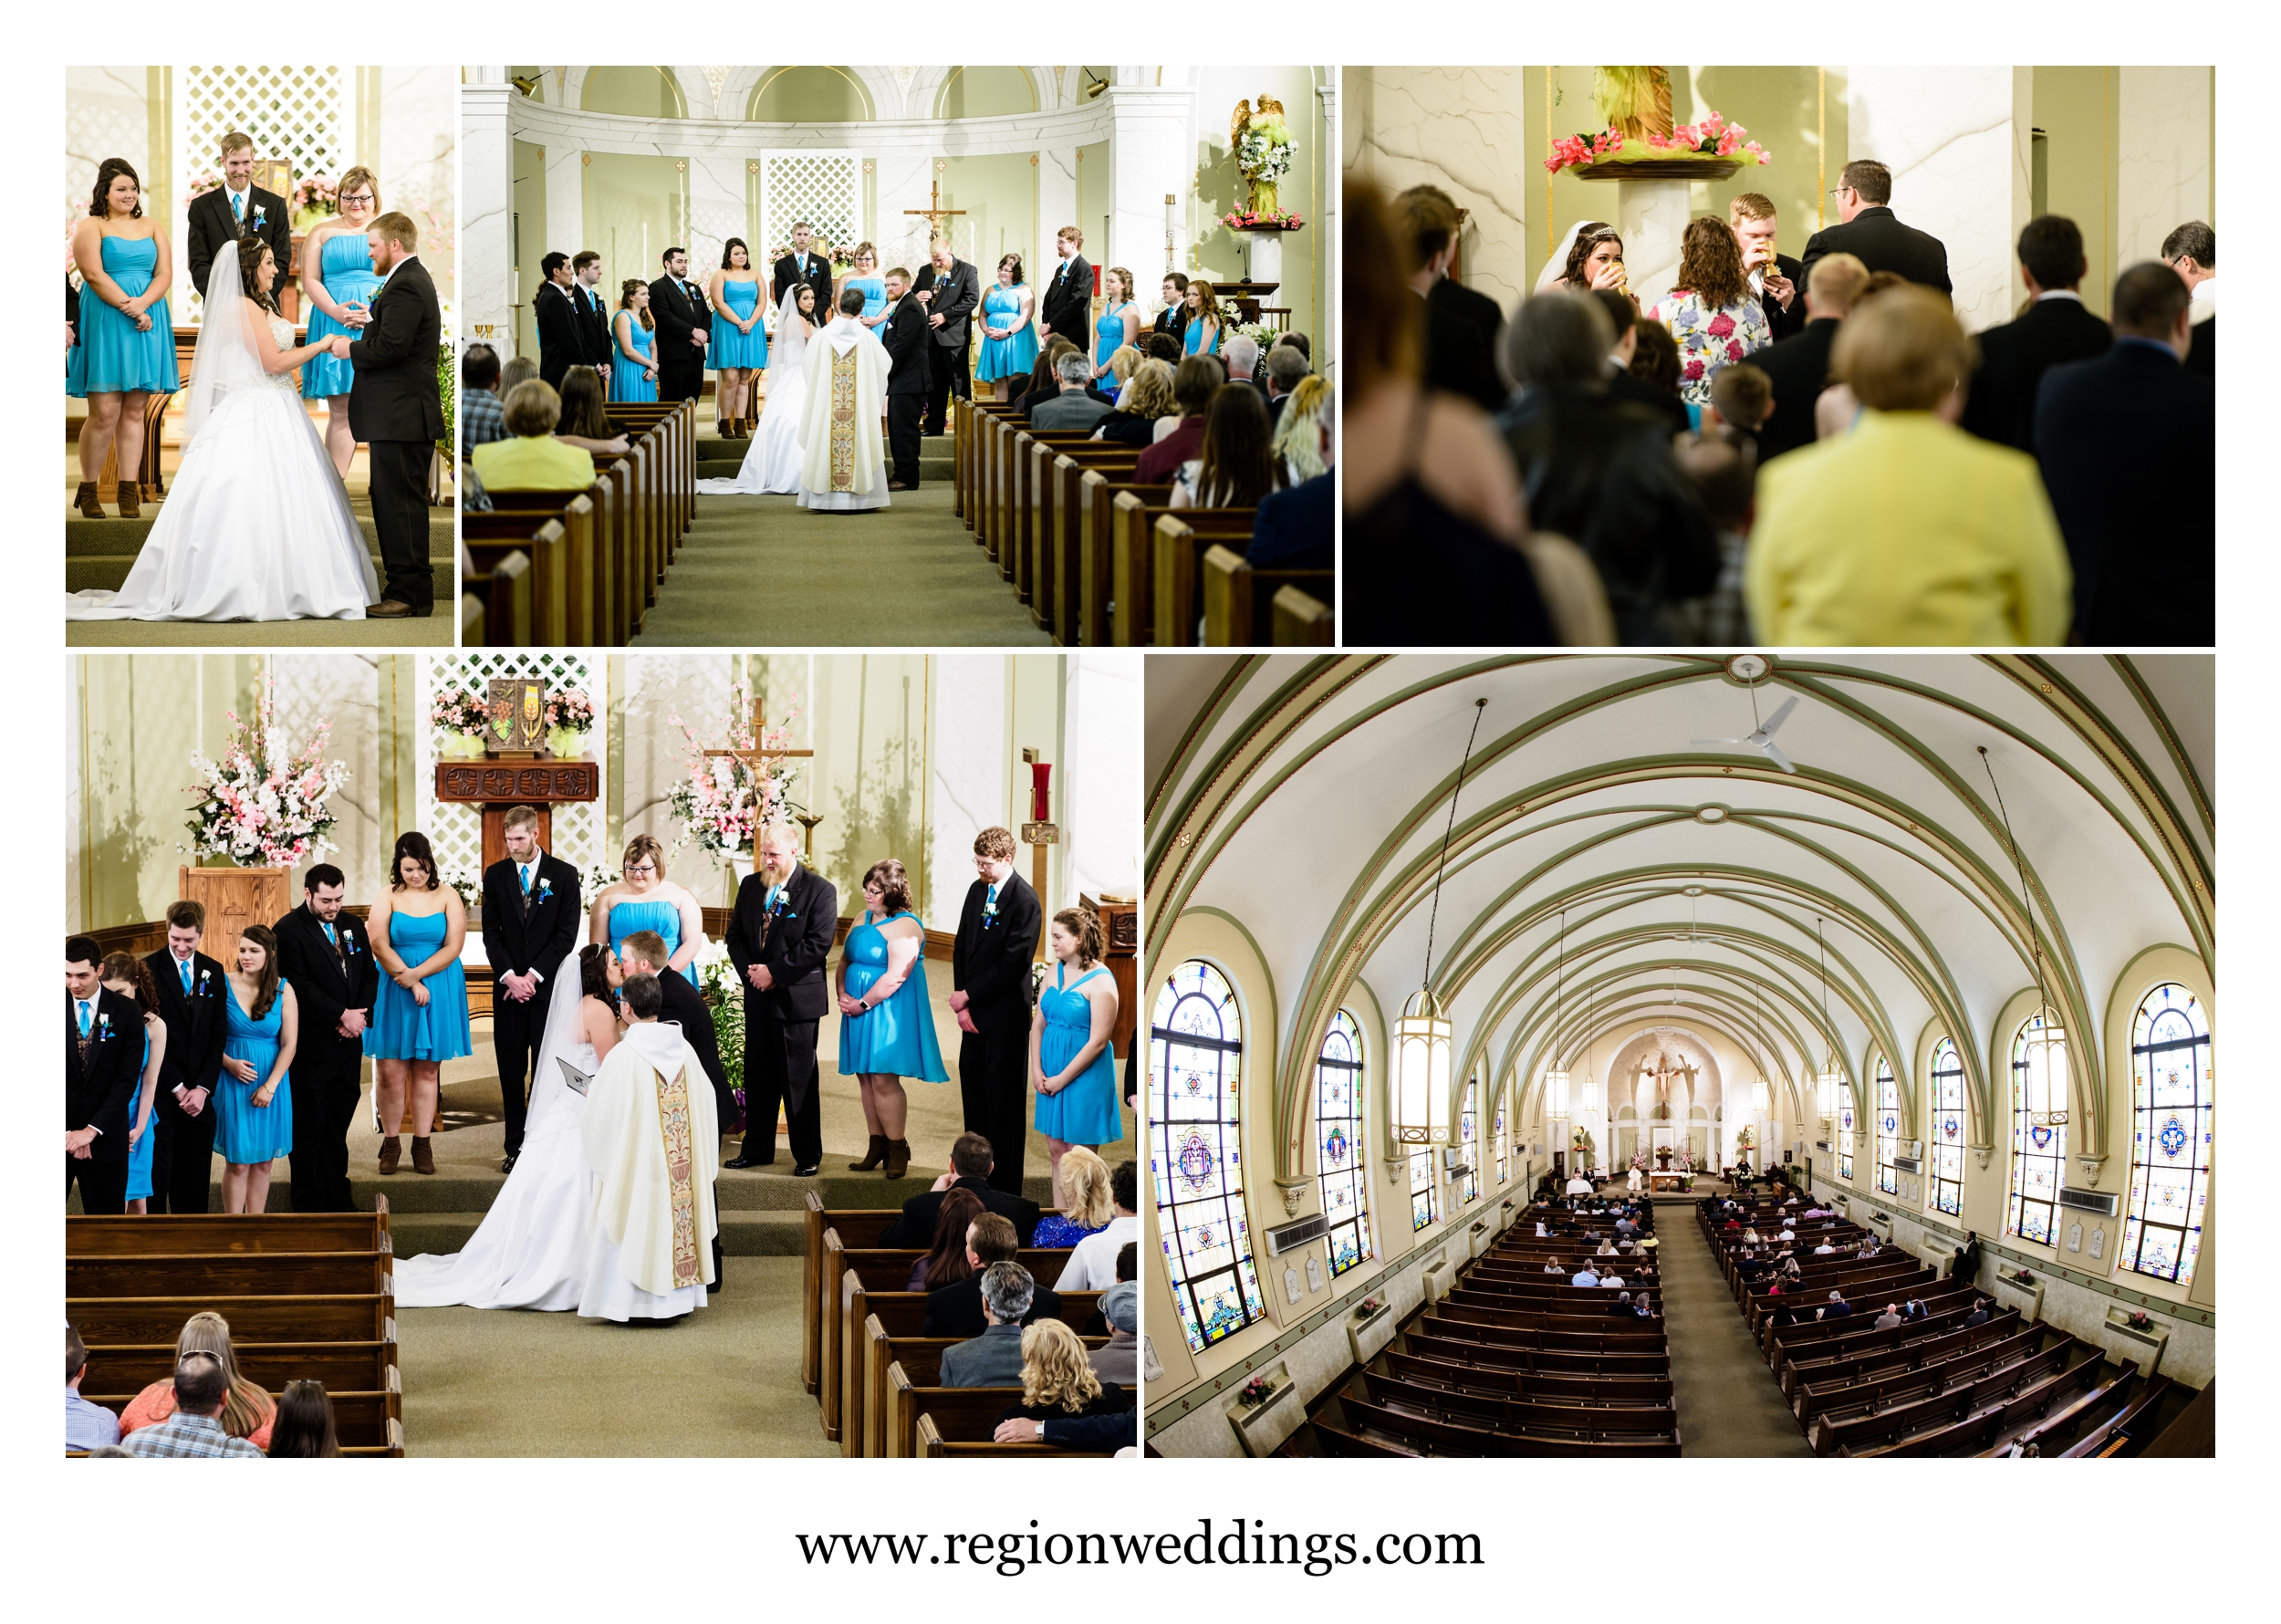 Holy Name Catholic Church wedding ceremony.